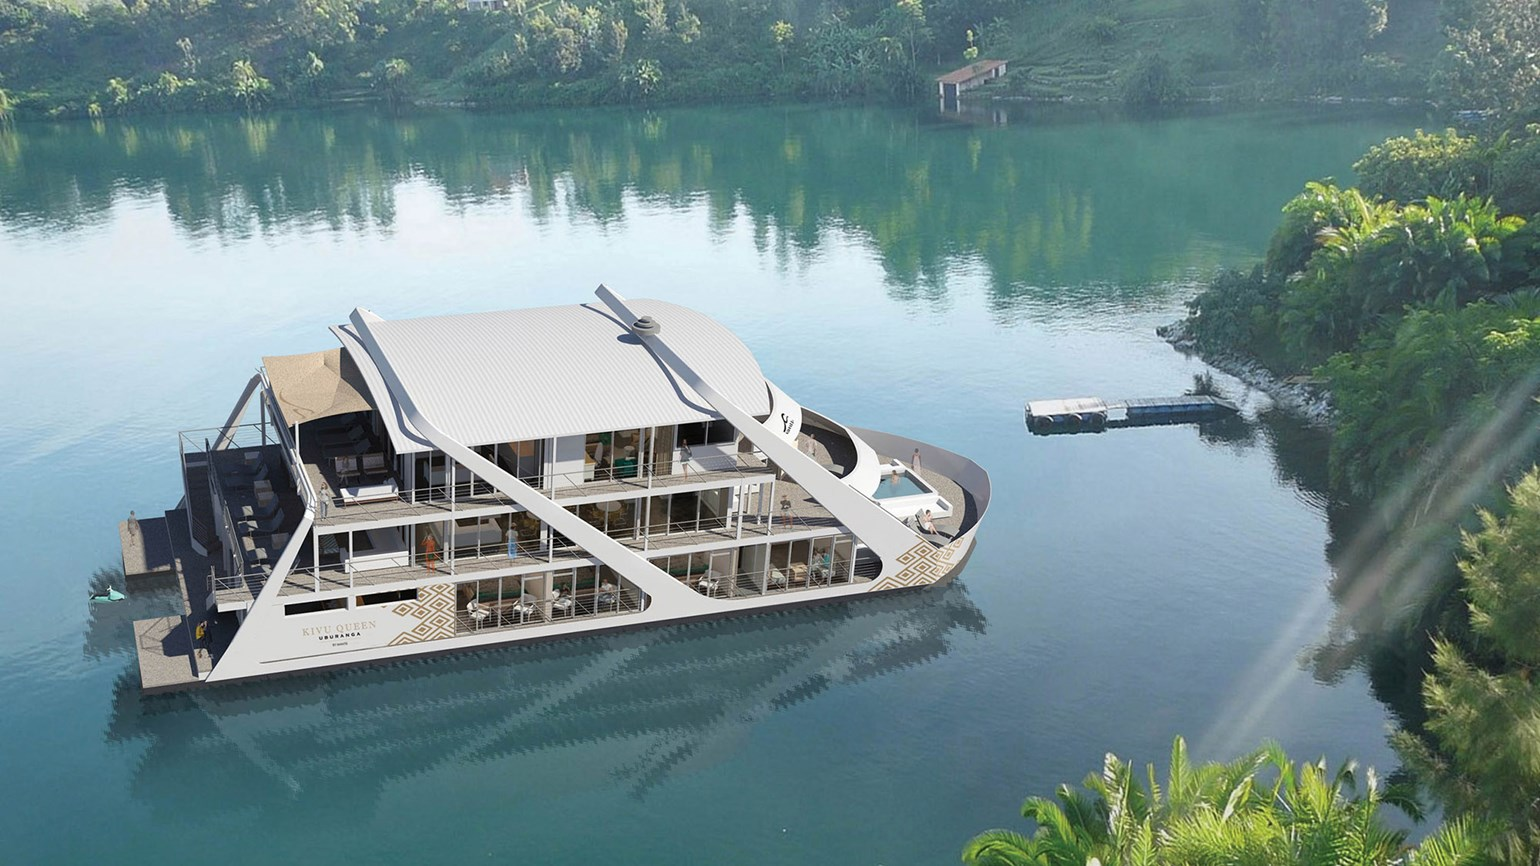 Mantis is launching a 'floating hotel' in Rwanda